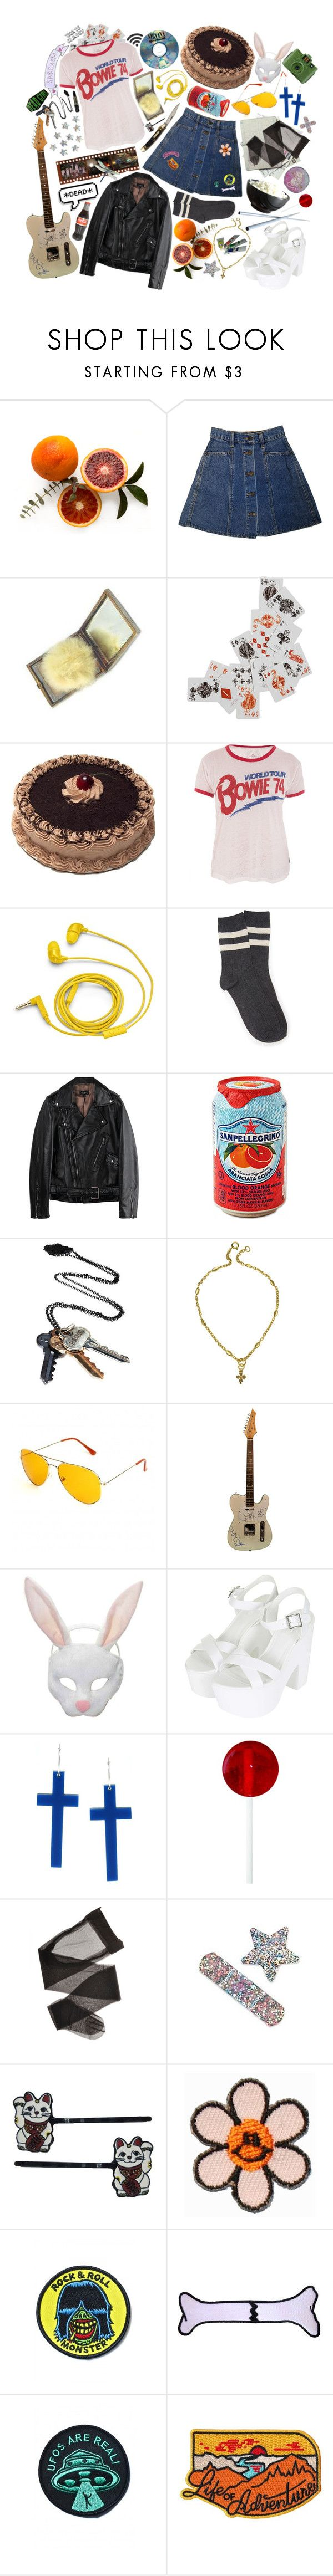 """The Hum of Cicadas and Engines"" by reslain ❤ liked on Polyvore featuring AllSaints, Trunk LTD, FOSSIL, Forever 21, Manic Panic NYC, A.P.C., Stolen Girlfriends Club, Chanel, Lamoda and Forum"